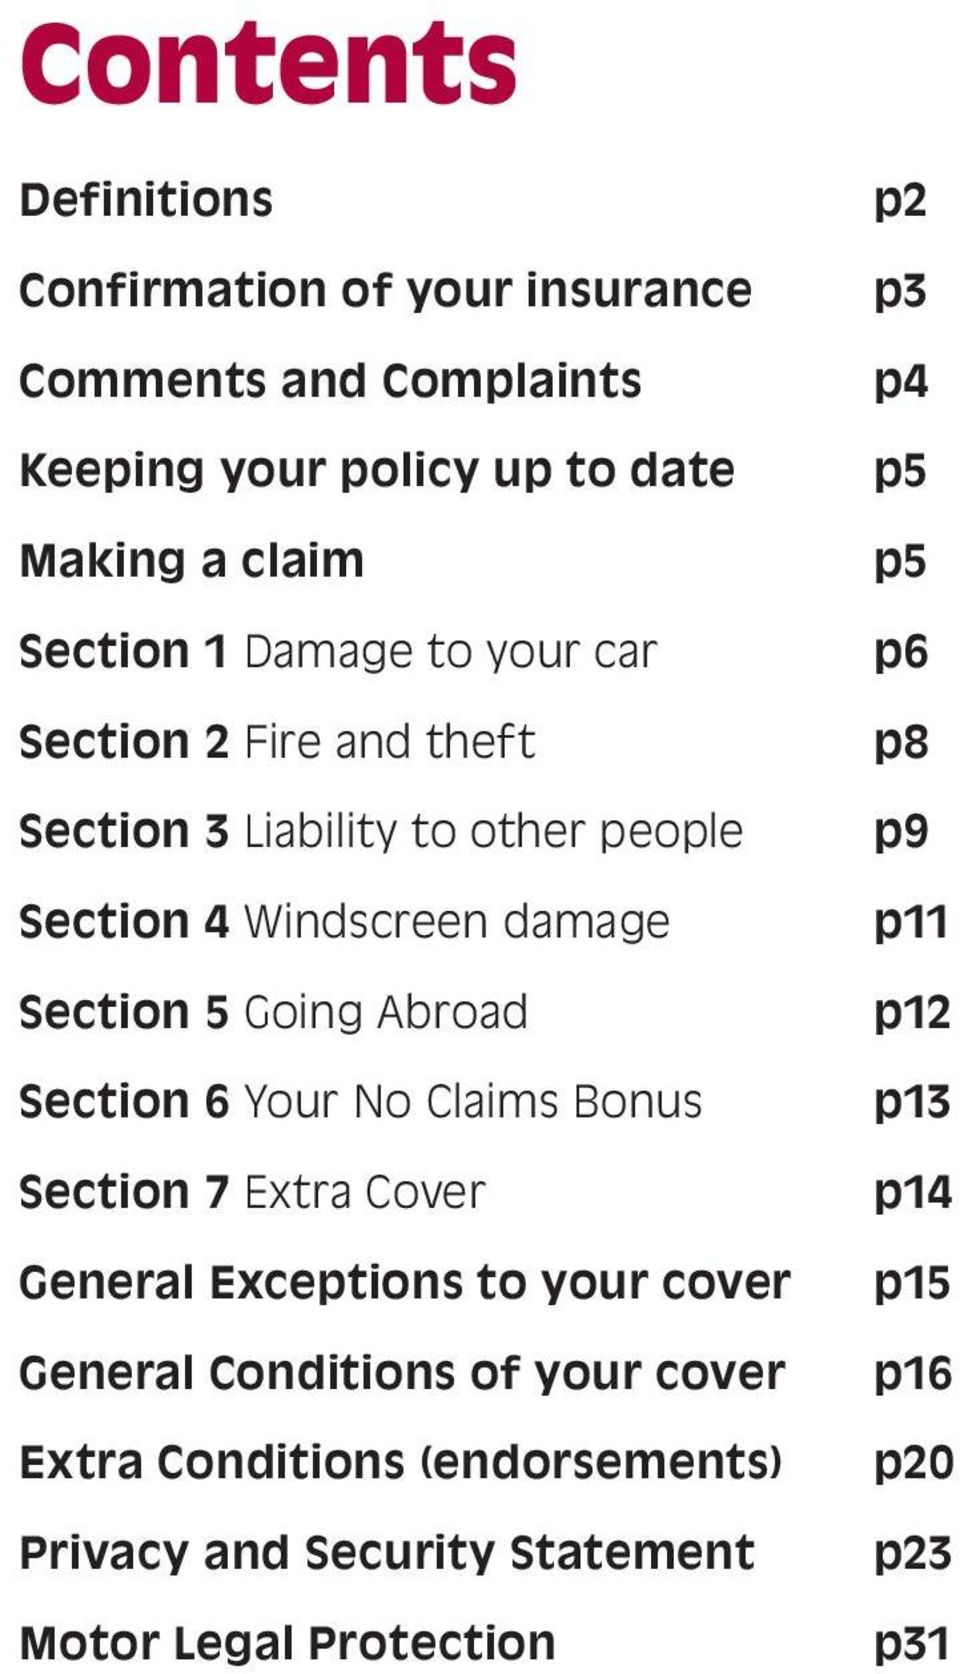 Section 6 Your No Claims Bonus Section 7 Extra Cover General Exceptions to your cover General Conditions of your cover Extra